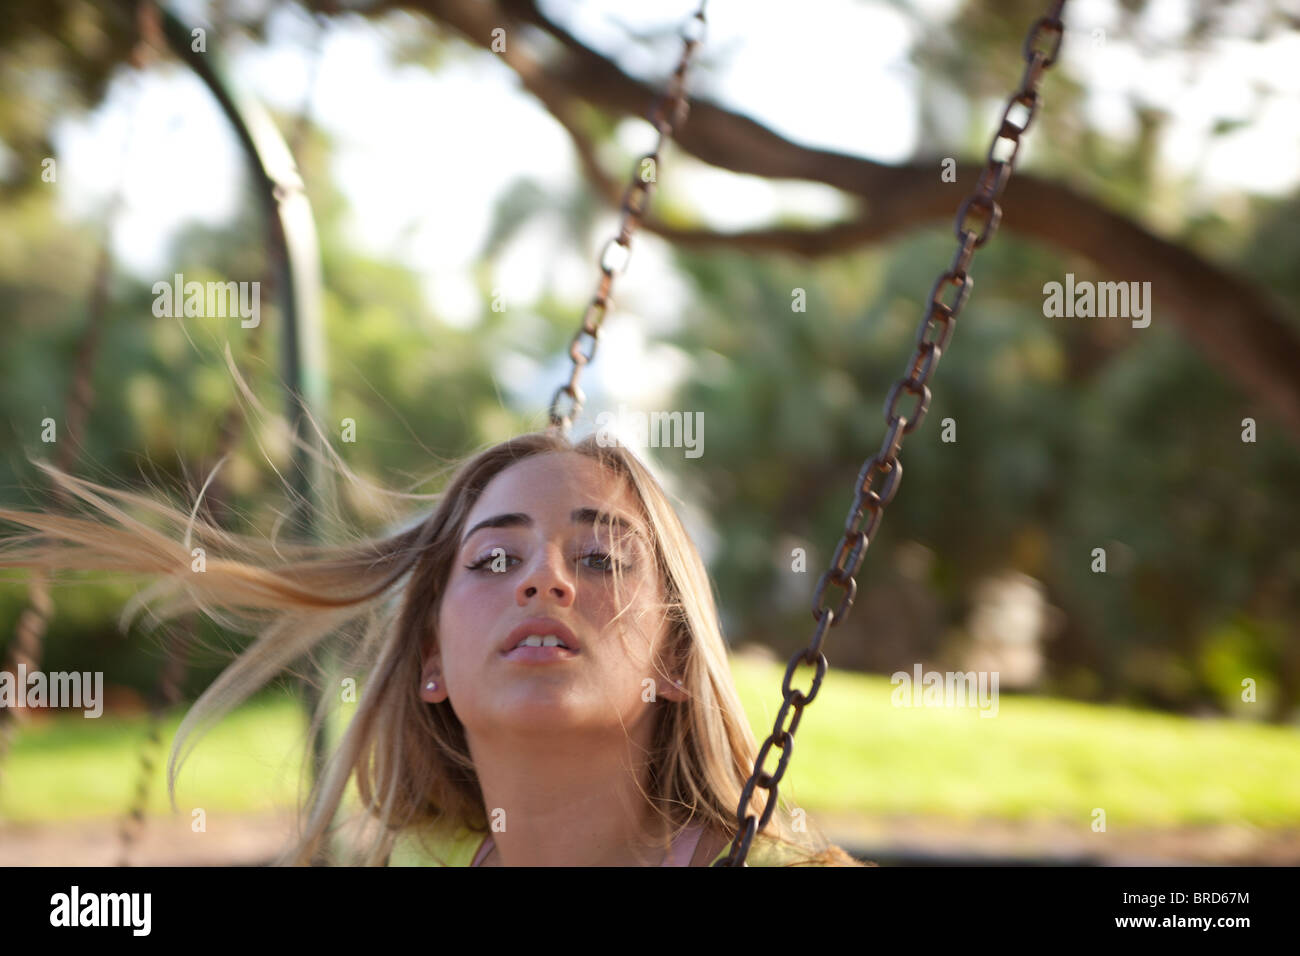 Young girl in her teens looks up from a swing at the park, her hair